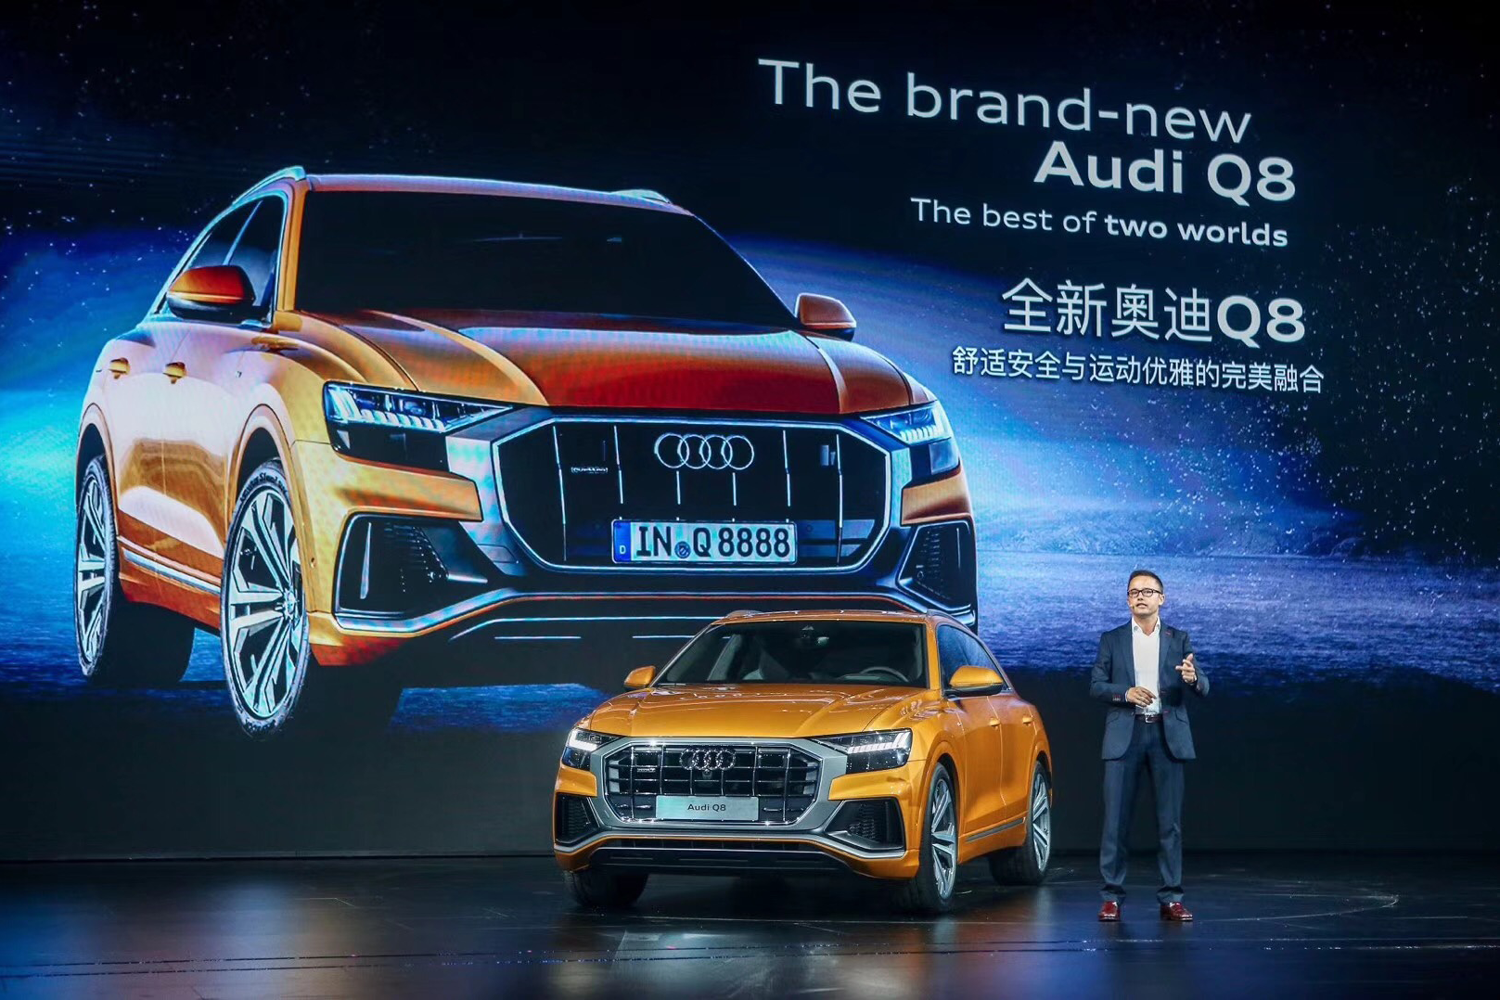 Audi Q8 Announcement Stage LED Screen